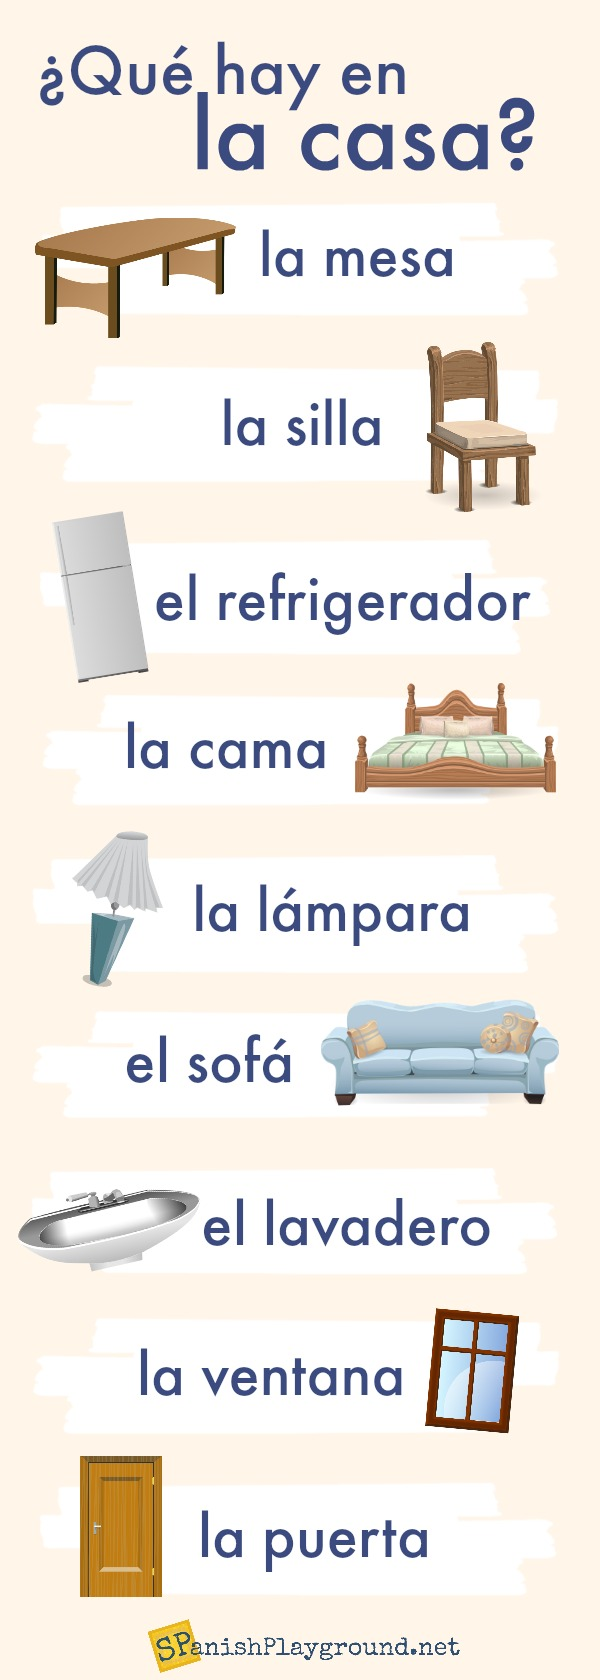 Use the infographic and the pictures to learn Spanish house vocabulary.